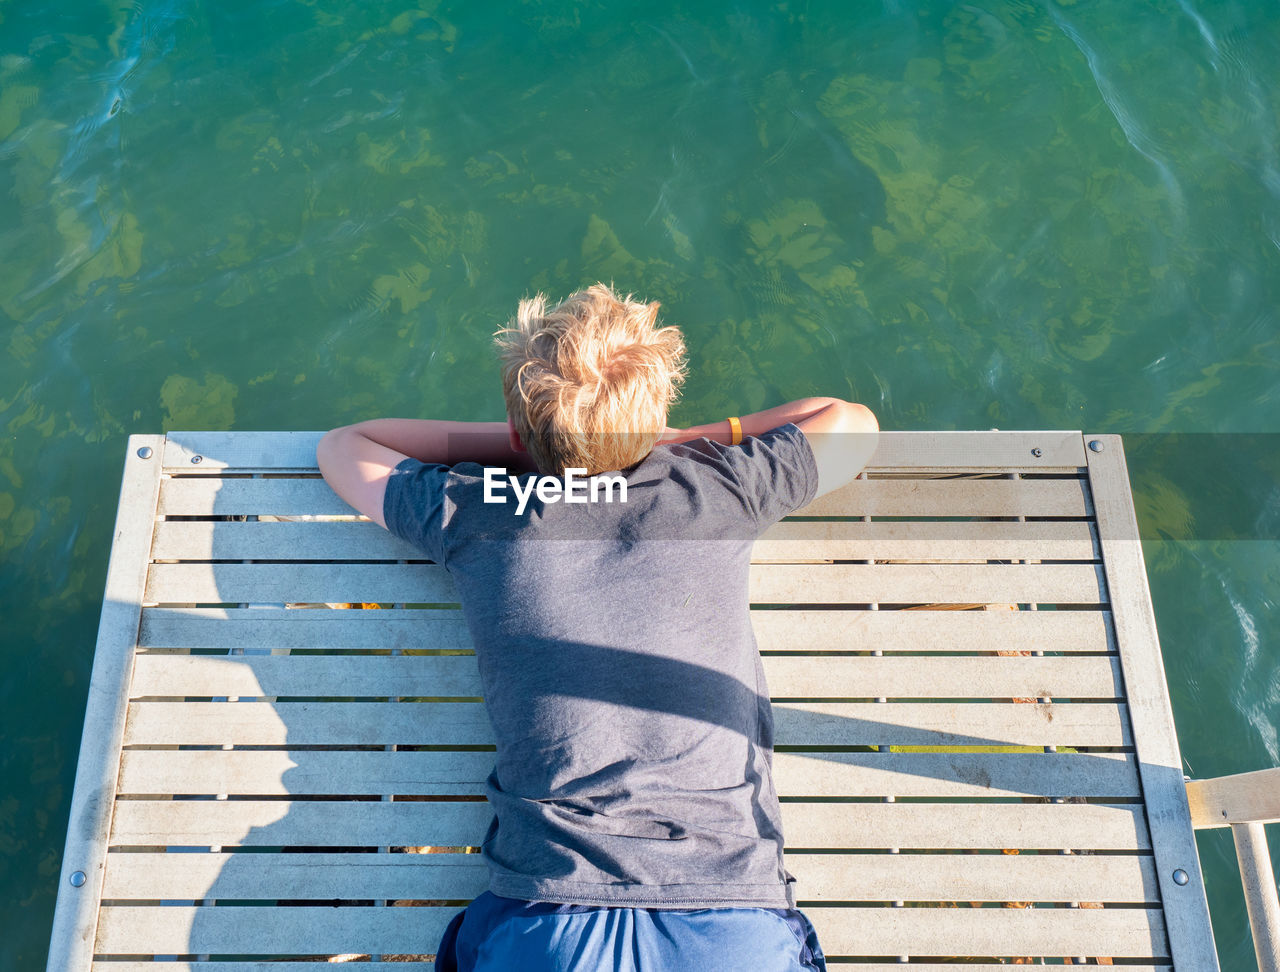 Boy lies on the mole and watches the fish in the lake water below. the joys of childhood